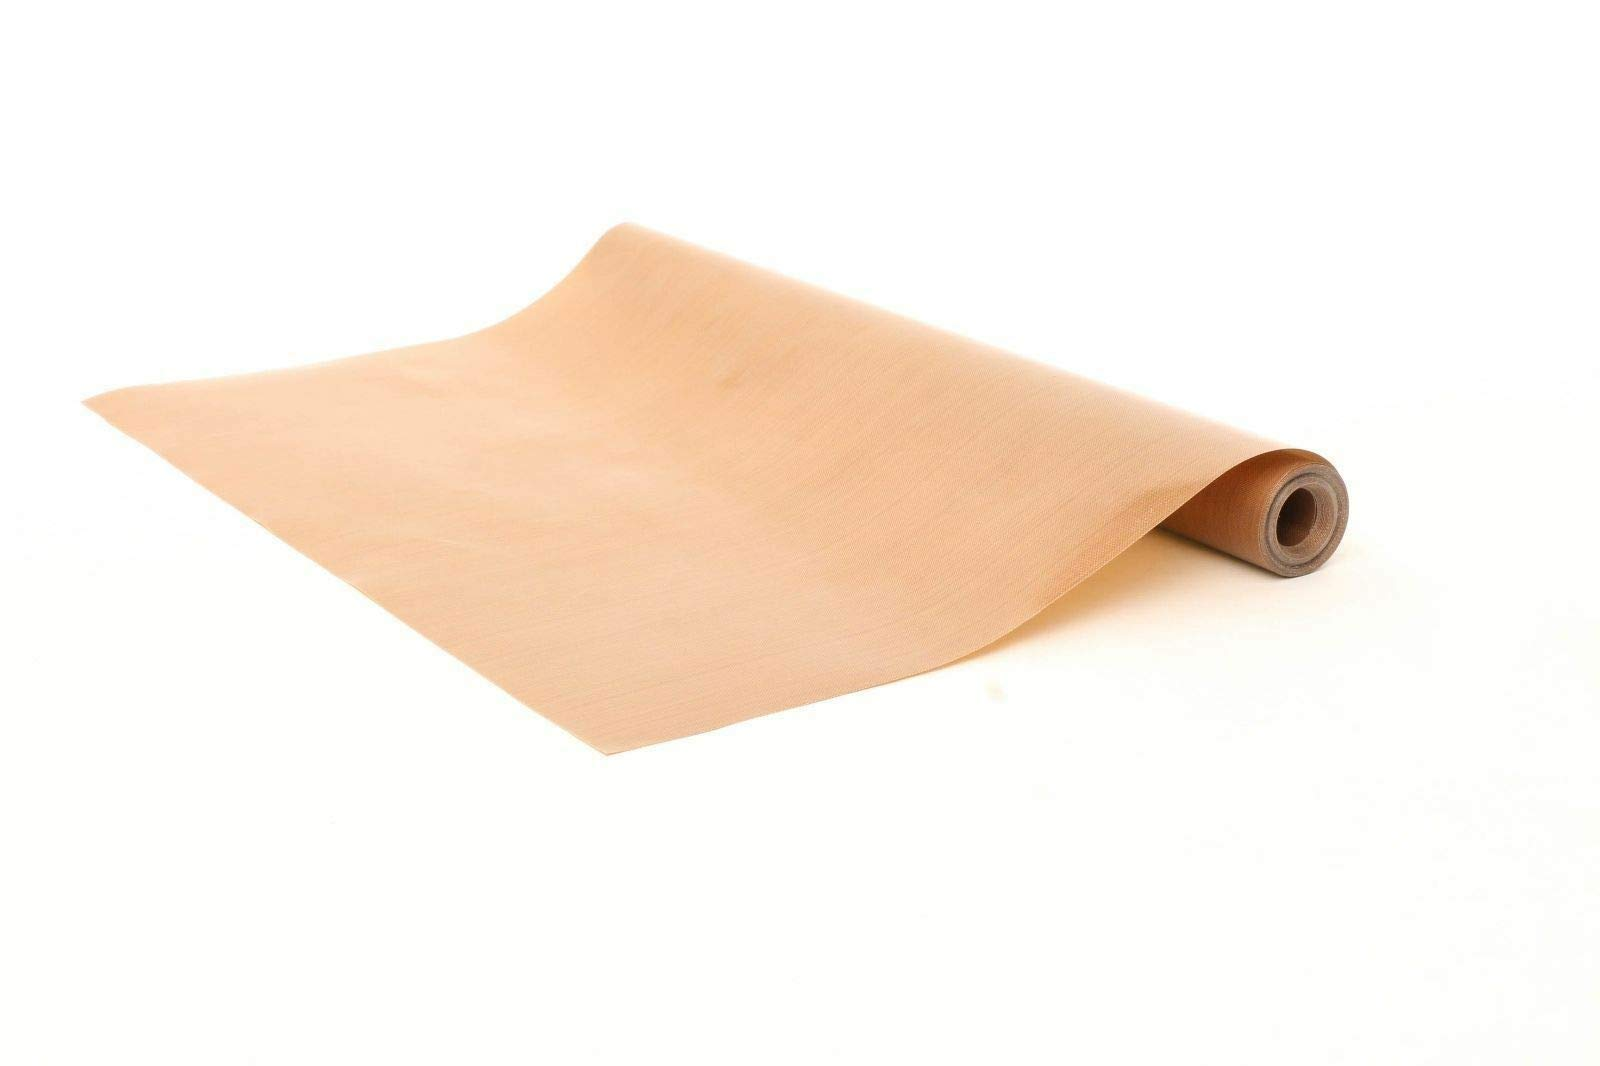 Teflon Roll - 20'' x 18 yards 54 FT PTFE FILM .003 x20''x54 FT SHEET HEAT PRESS by Werner American Teflon